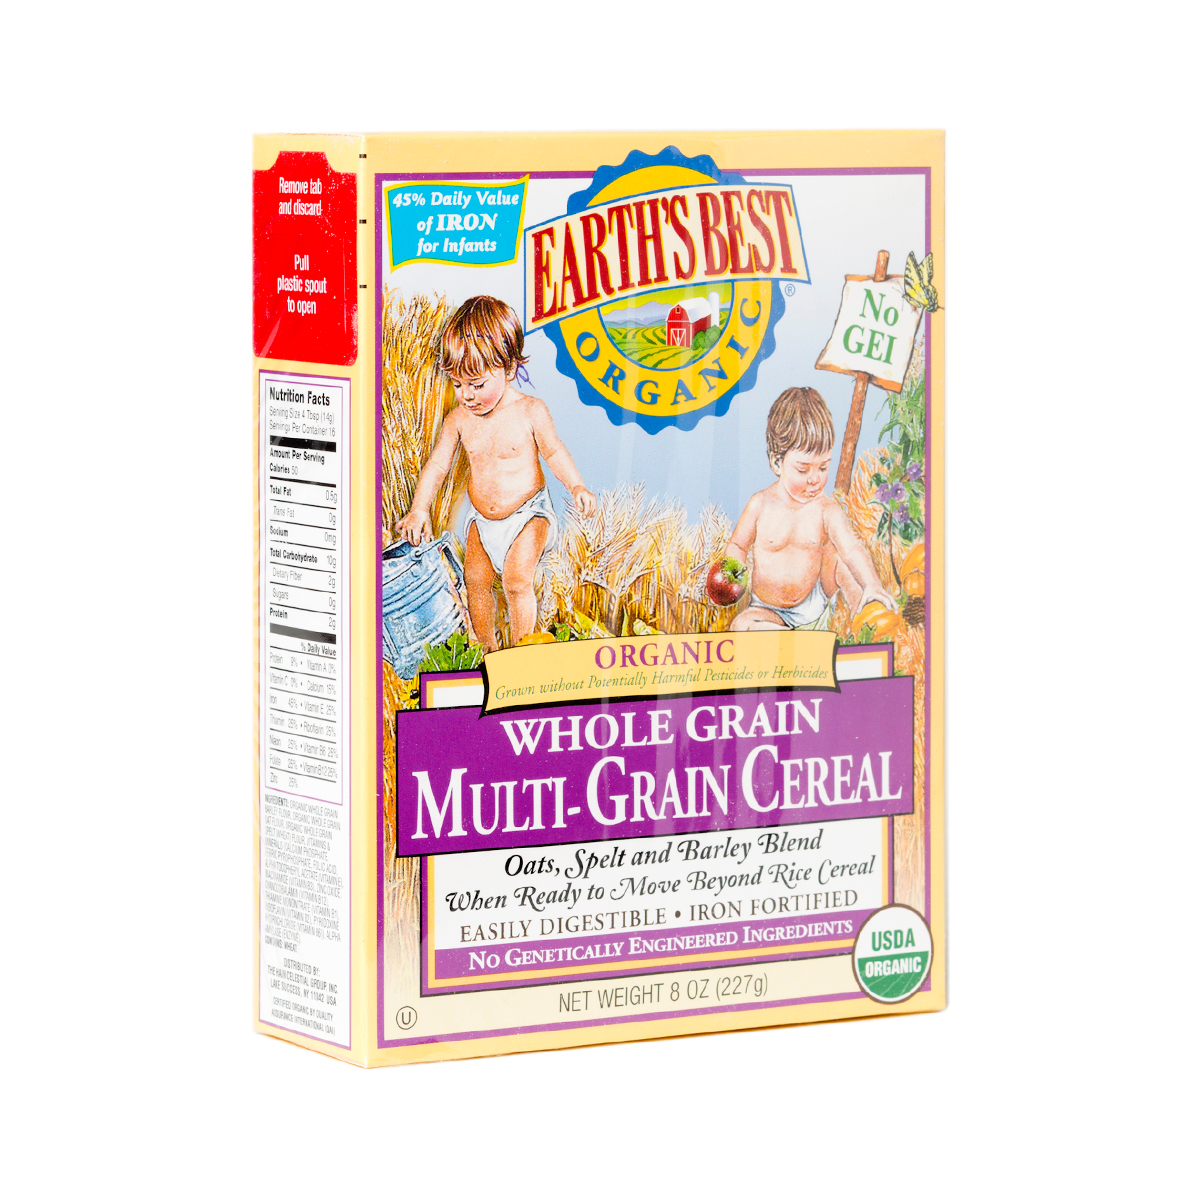 Earth best cereal